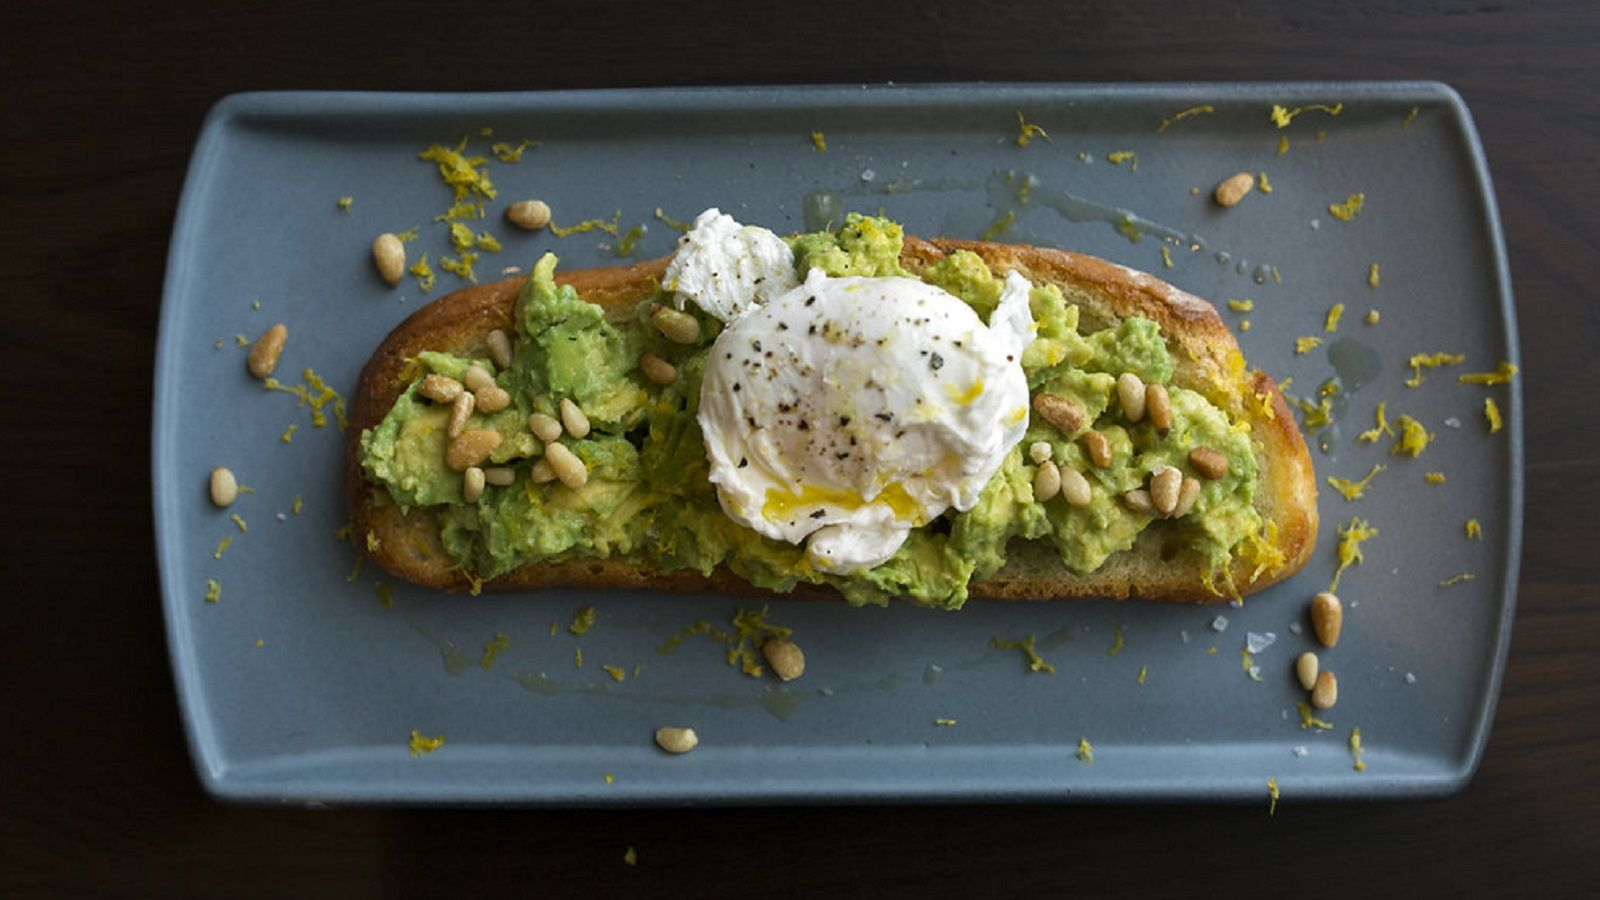 Avocado Bruschetta with Poached Egg